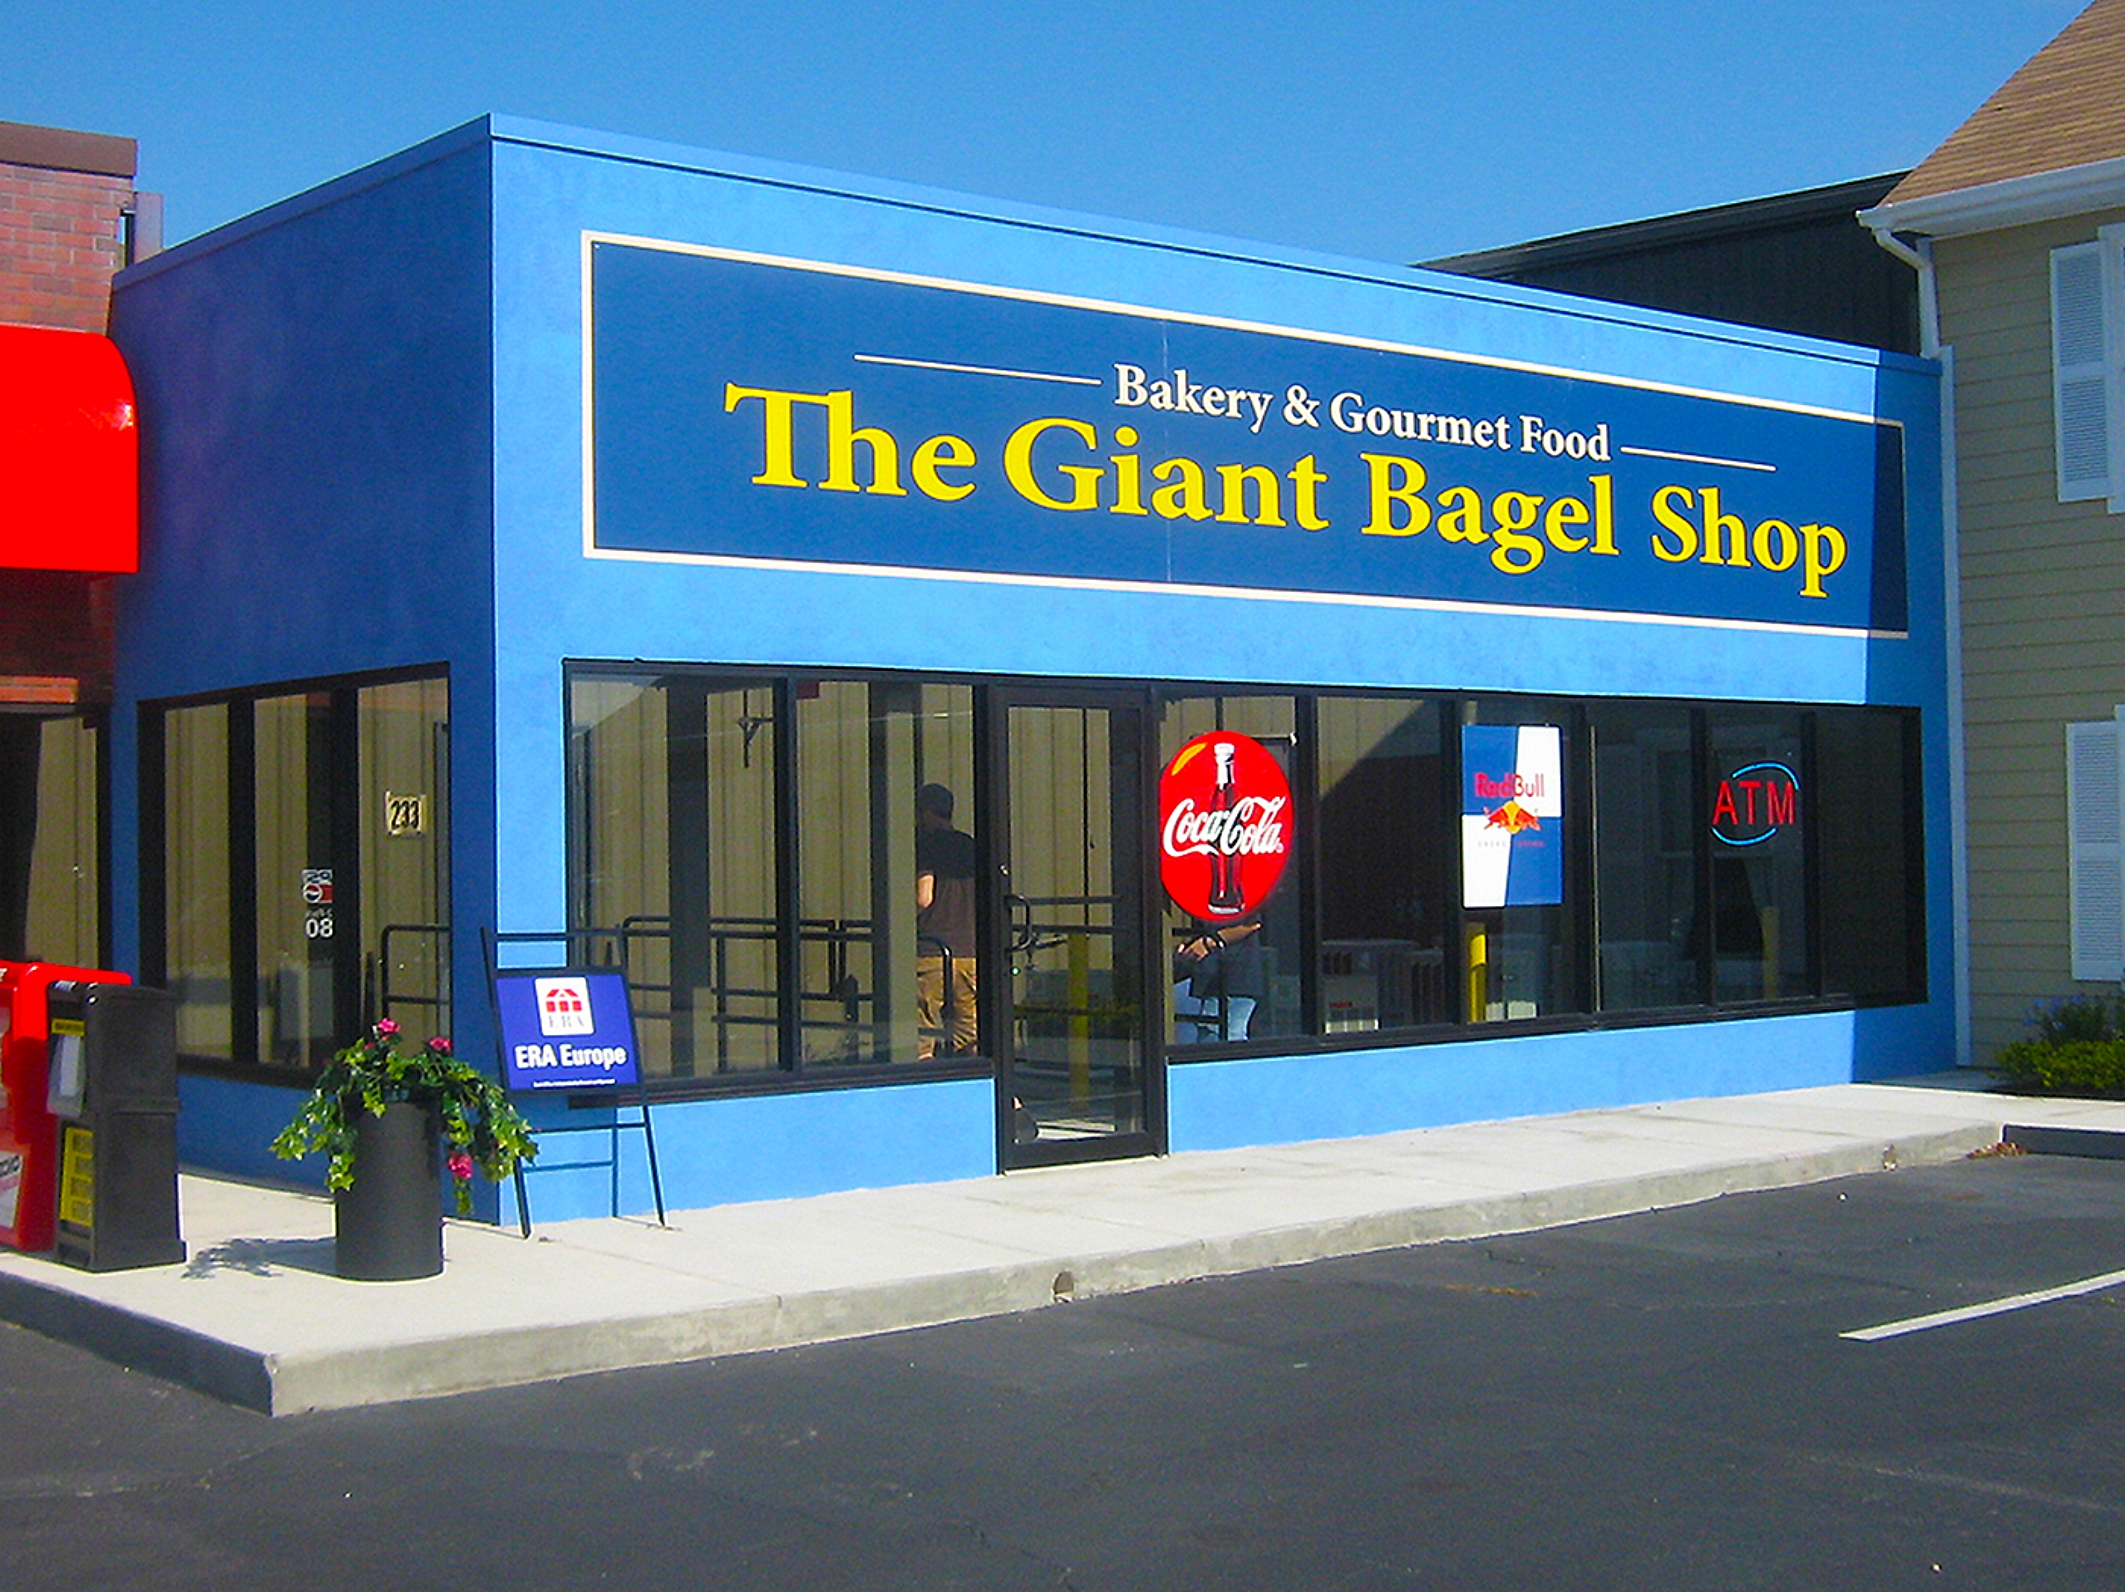 The Giant Bagel Shop